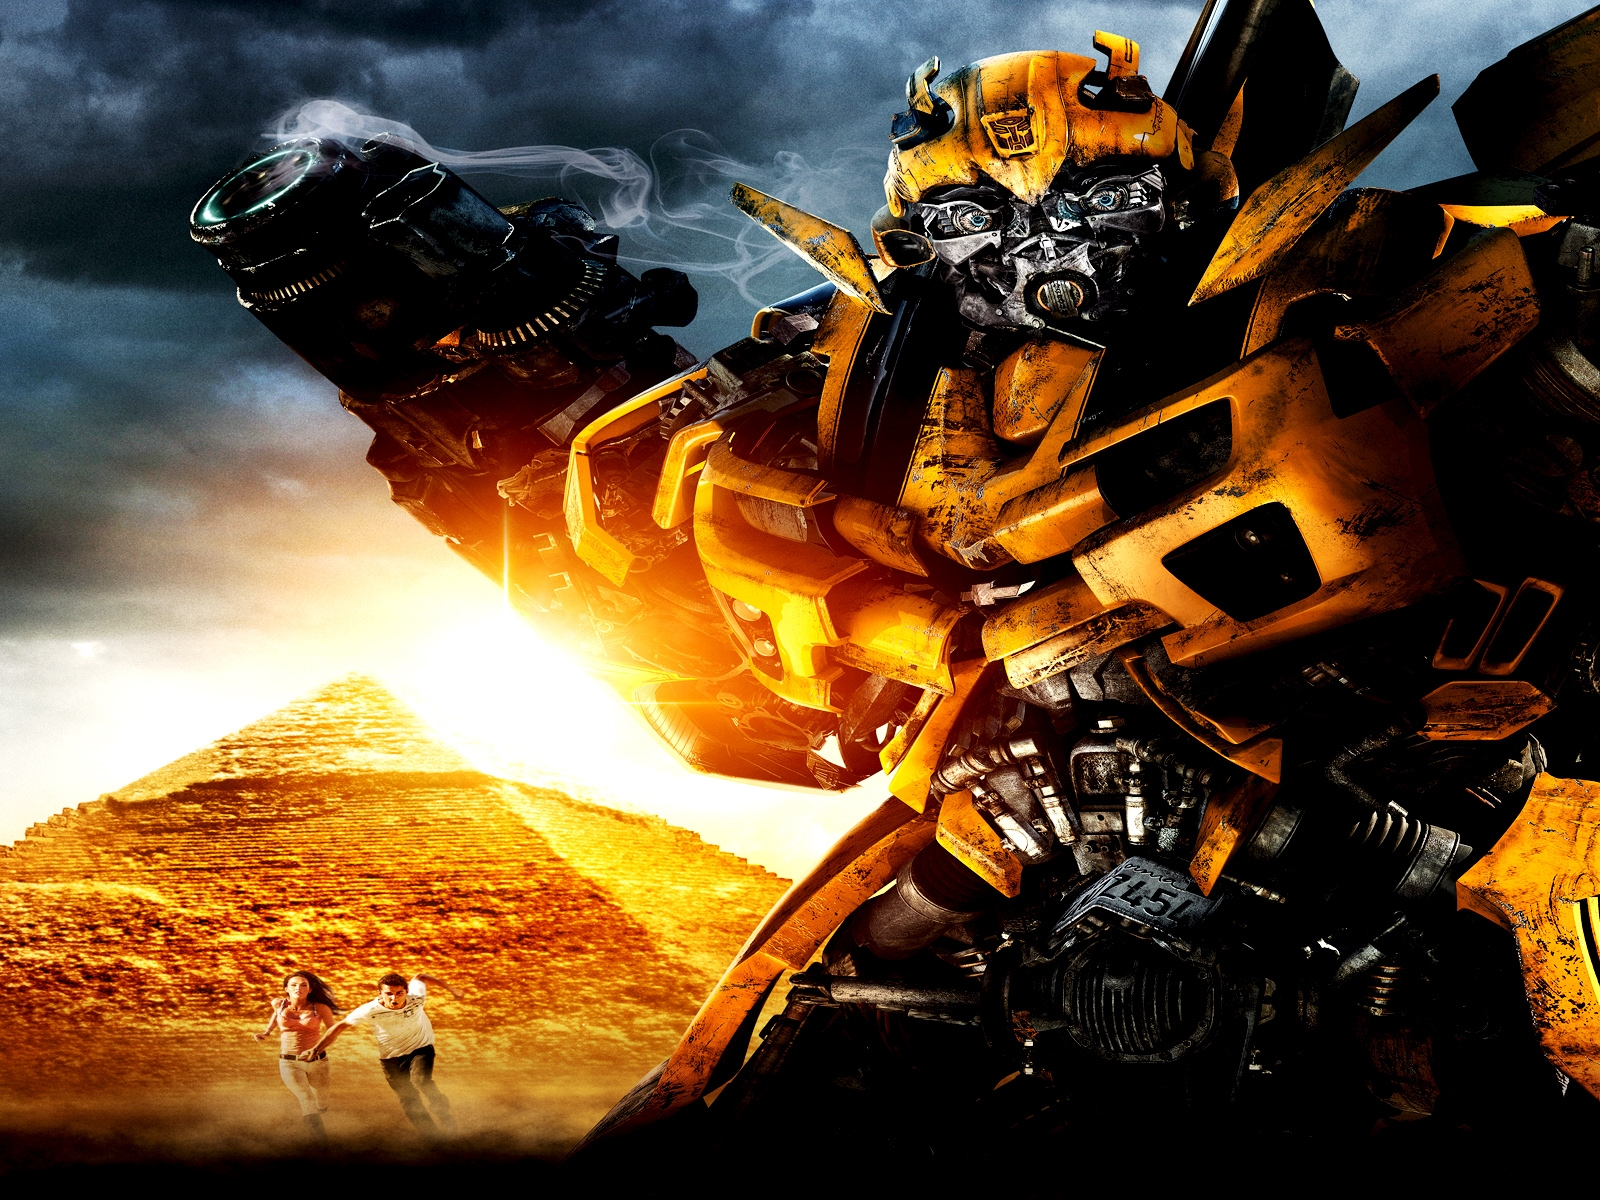 Bumblebee Transformers Wallpaper Hd Free